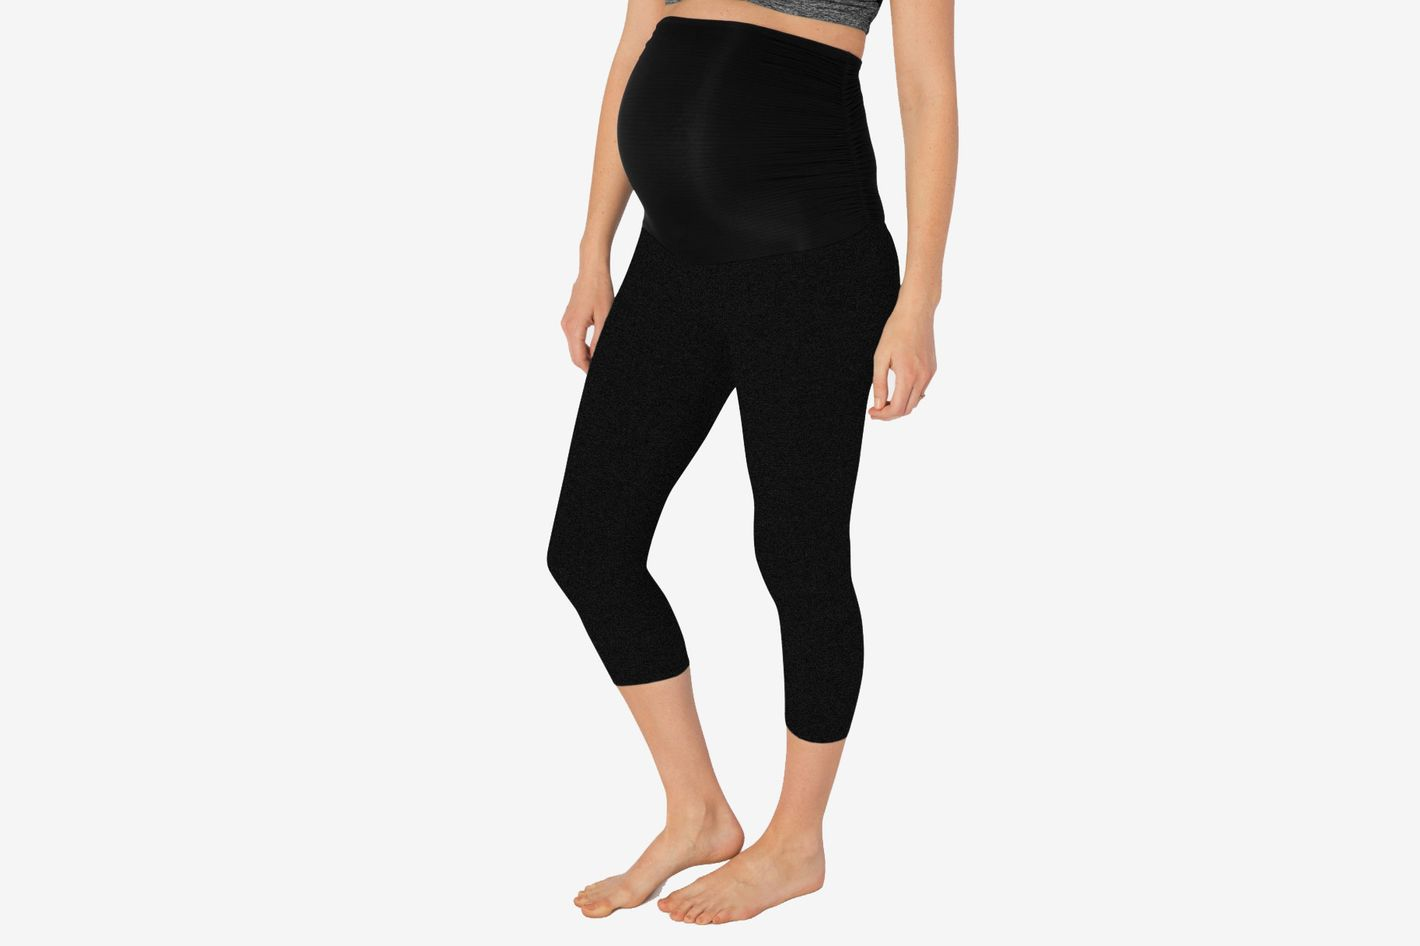 f80ae04b06dff Beyond Yoga Hug the Belly Capri Leggings